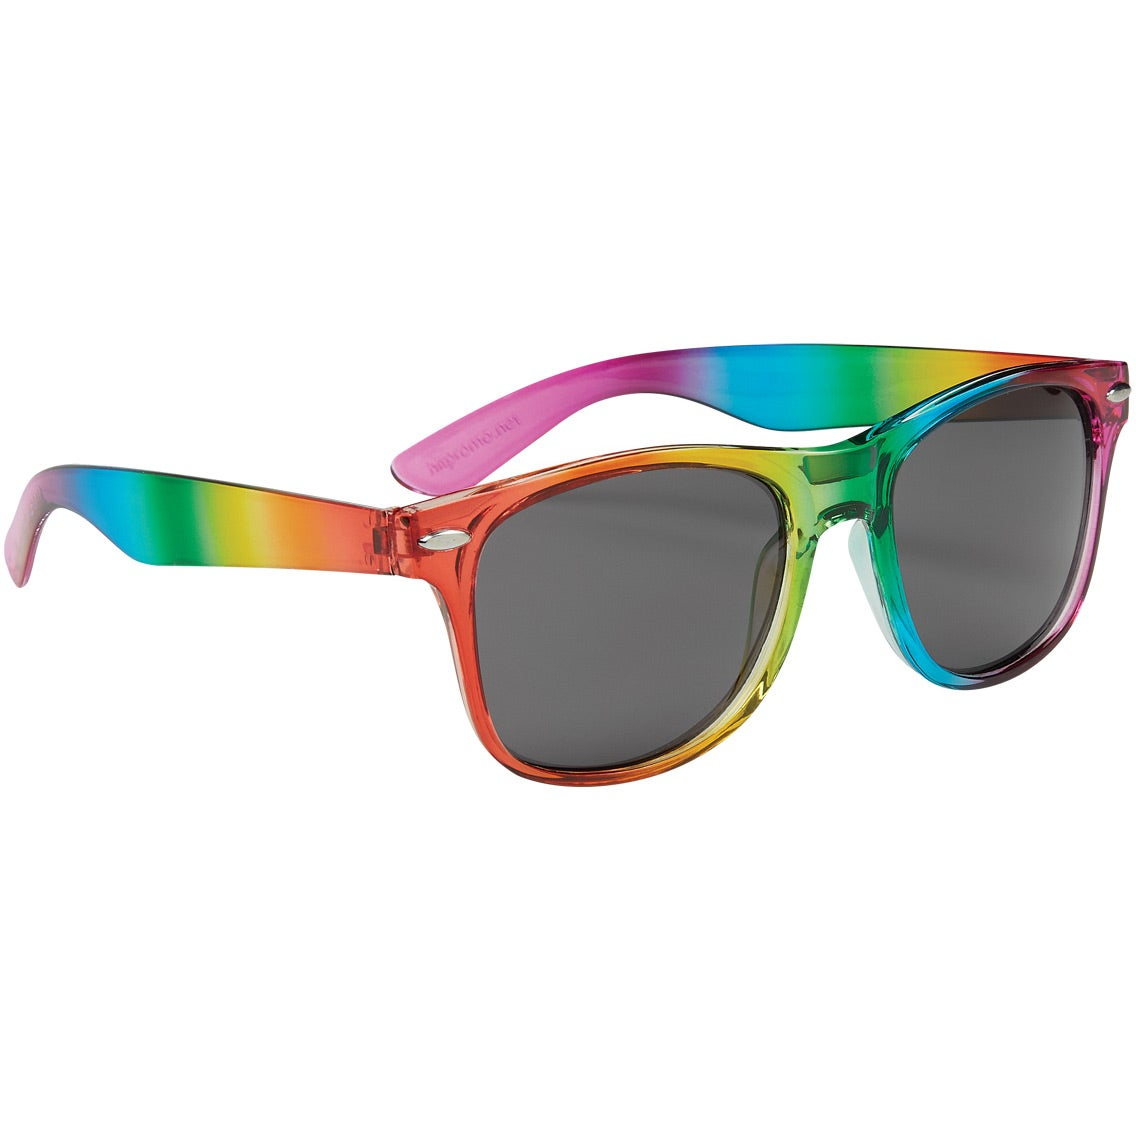 596f6a3e CLICK HERE to Order Rainbow Malibu Sunglasses Printed with Your Logo for  $2.24 Ea.